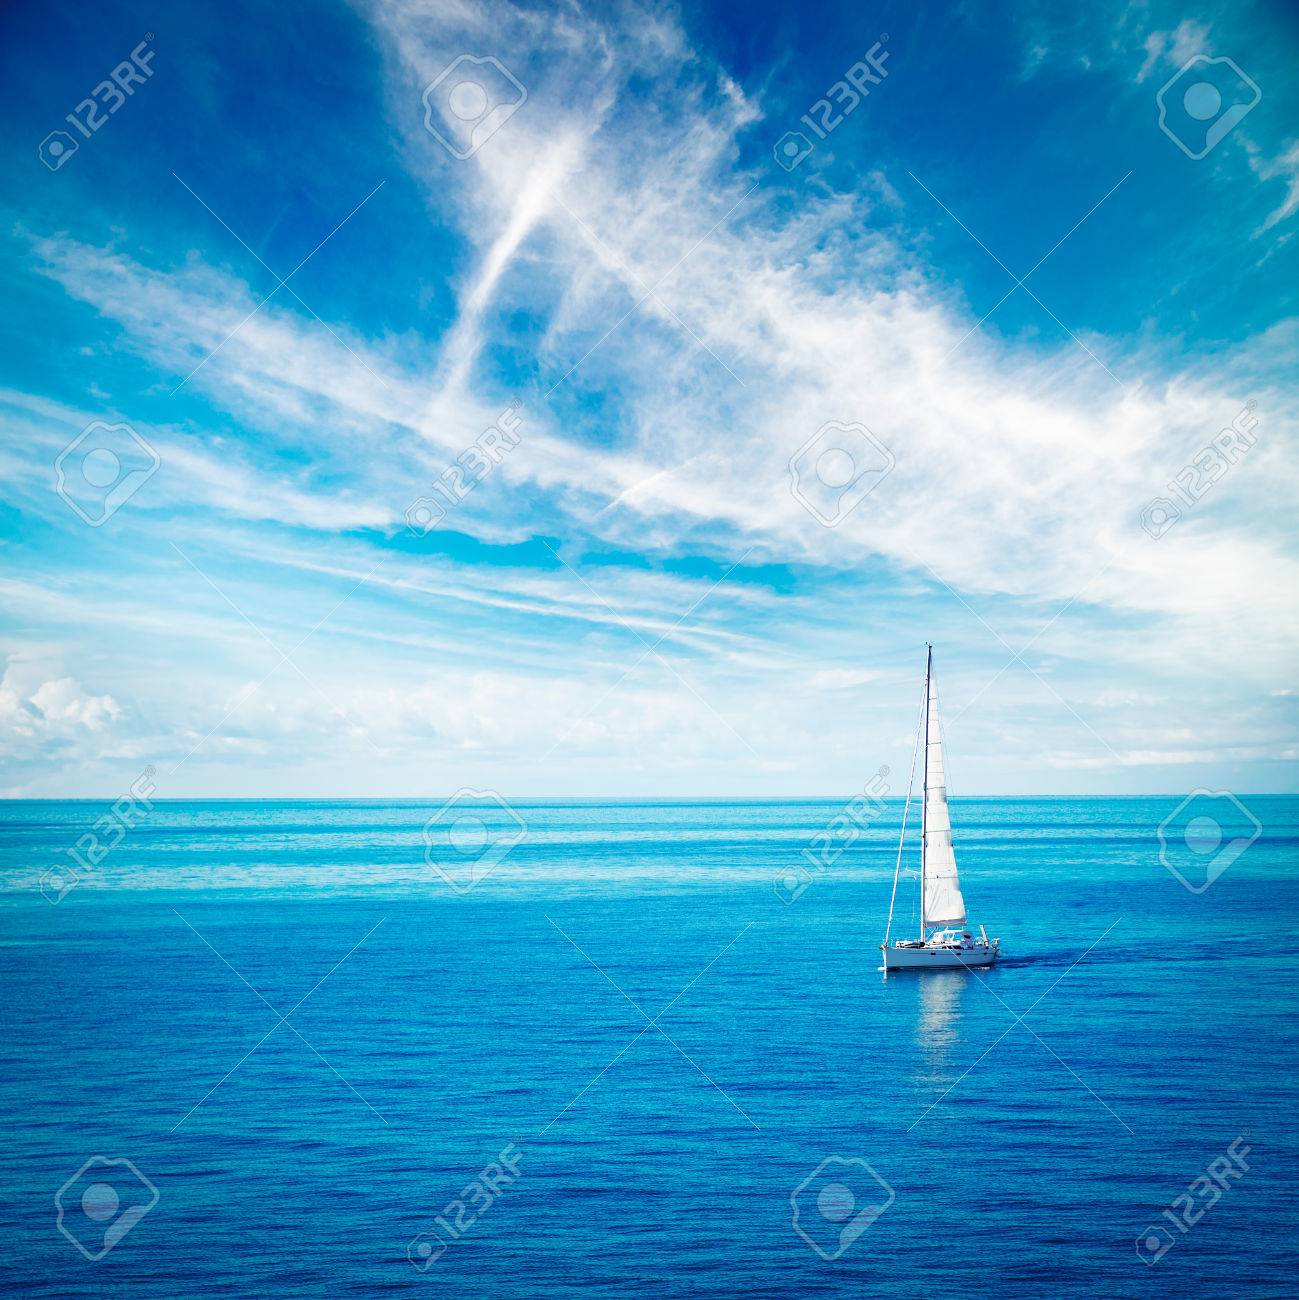 Beautiful Seascape with White Yacht Sailing in Blue Sea. Square Photo with Copy Space. - 49168382